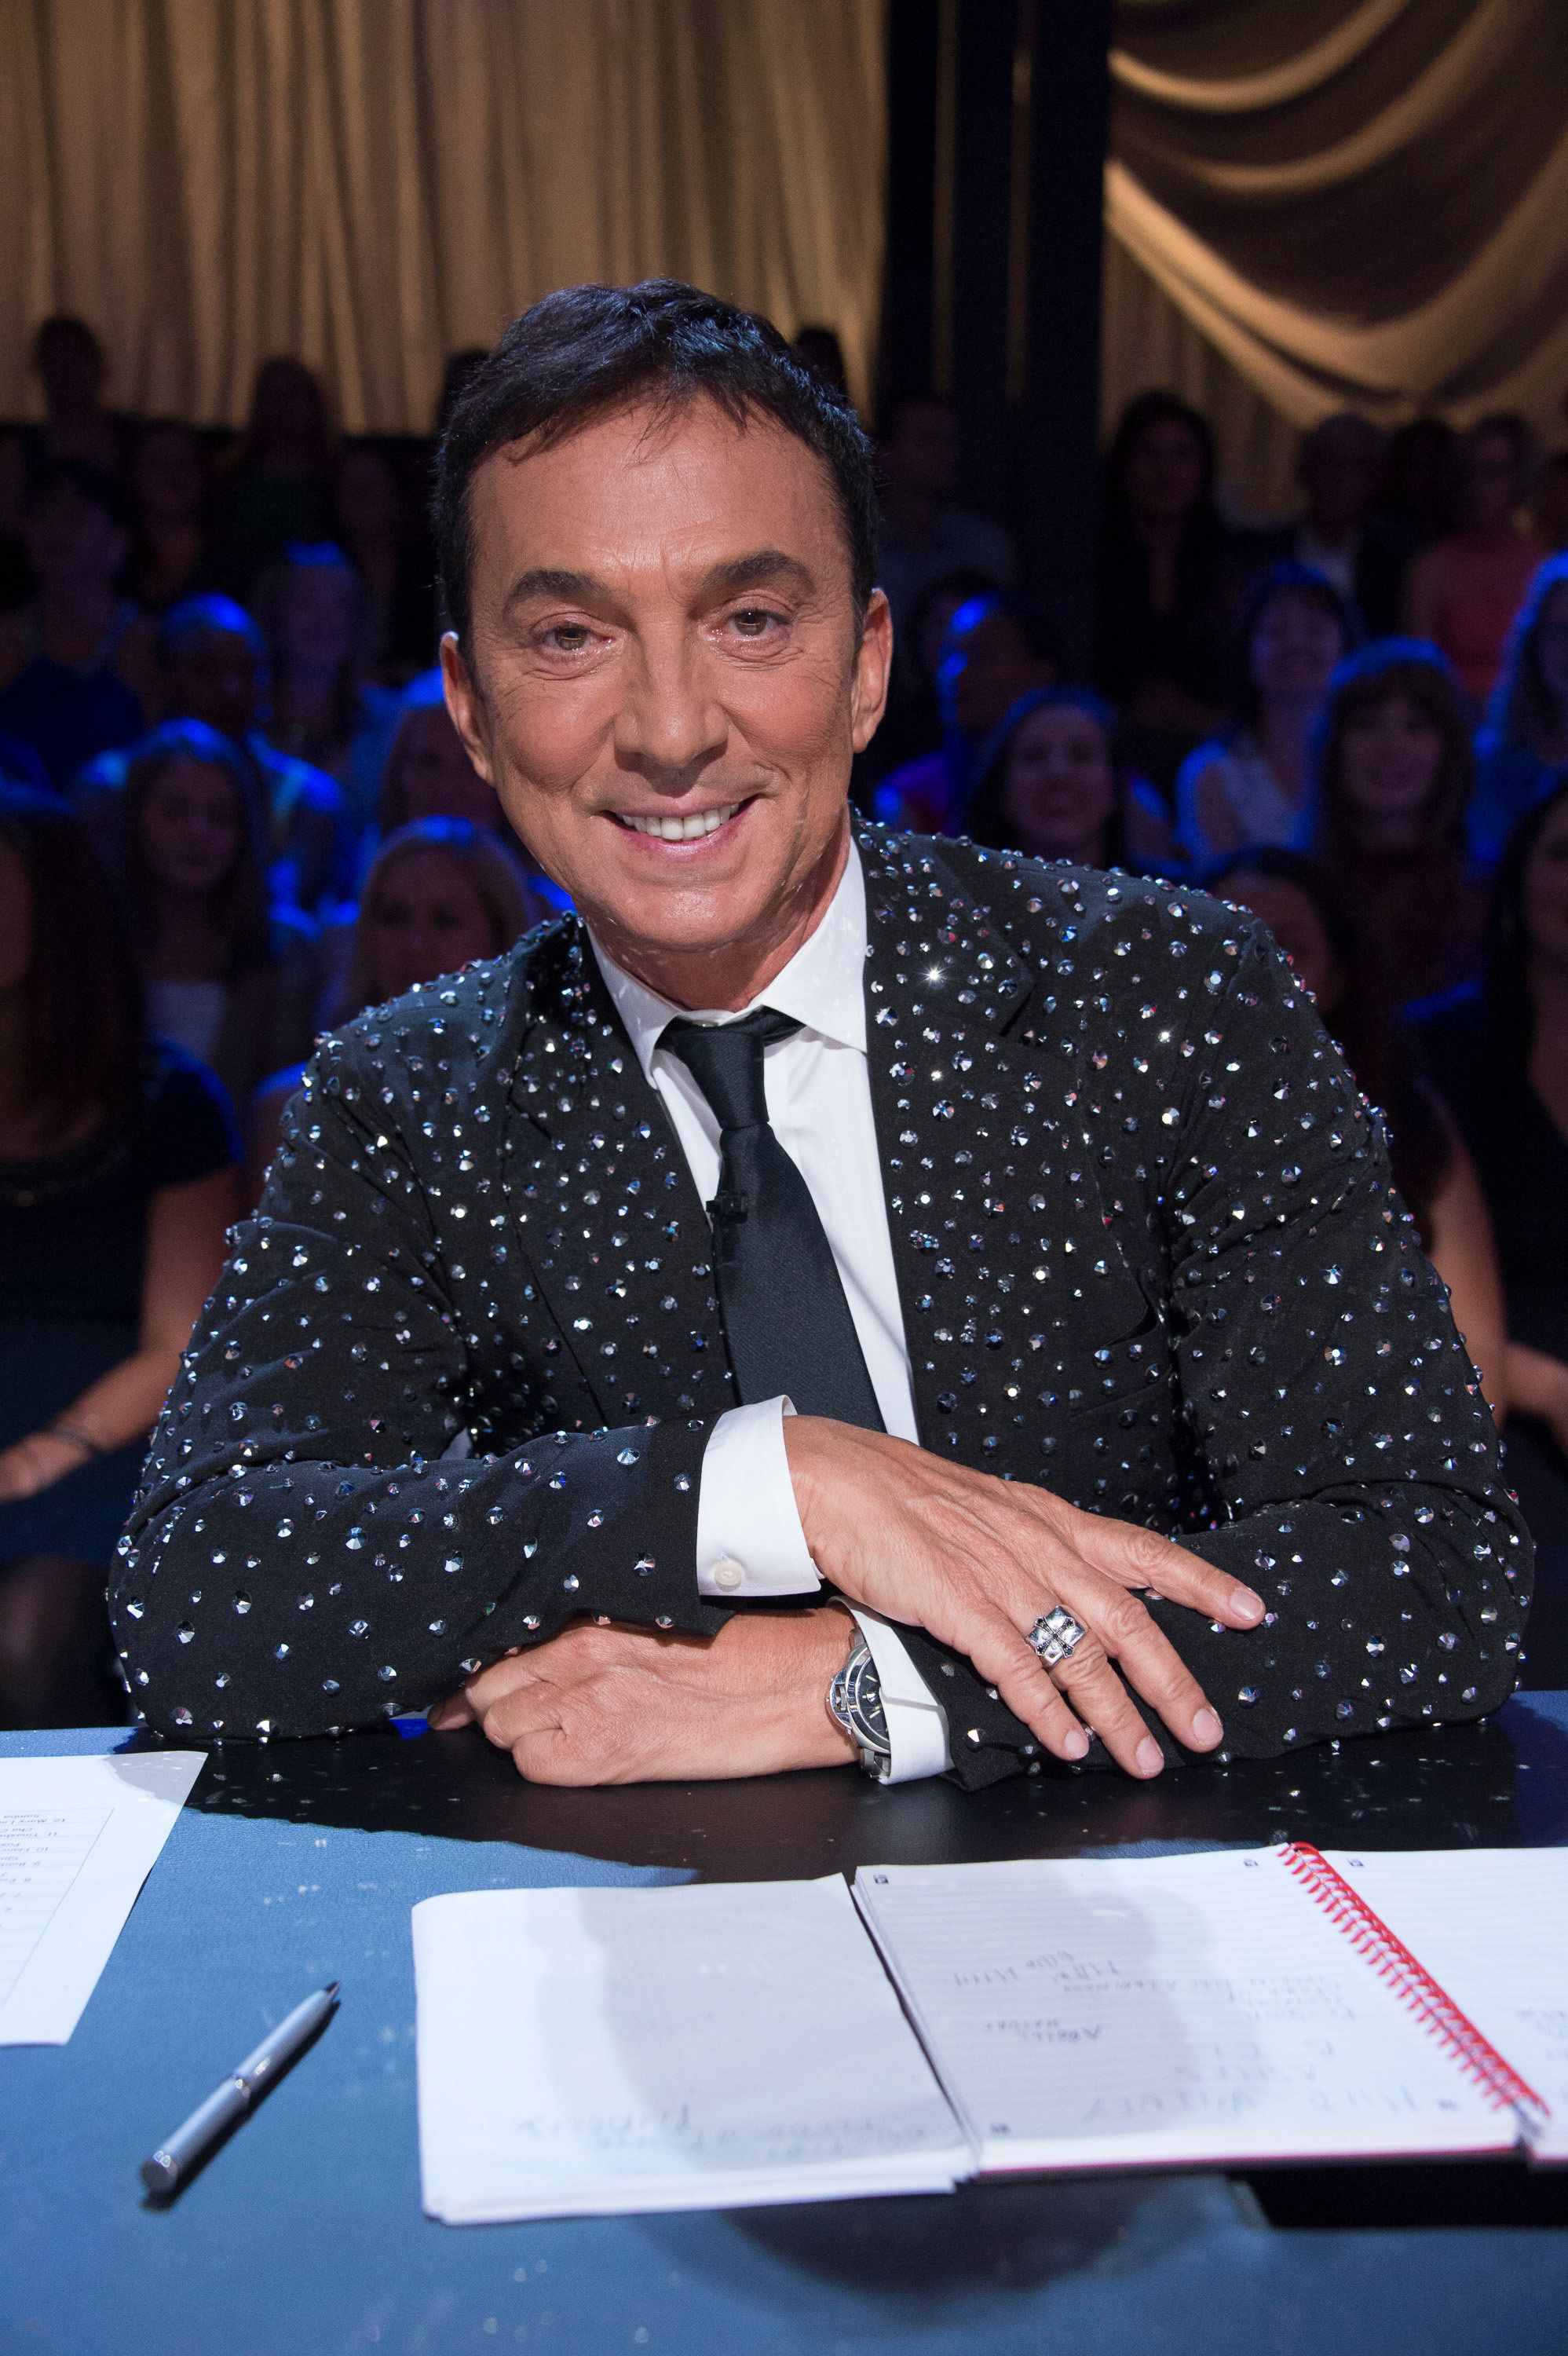 Bruno Tonioli Admits He's Never Watched 'Strictly' (And Reveals The Surprising Reason